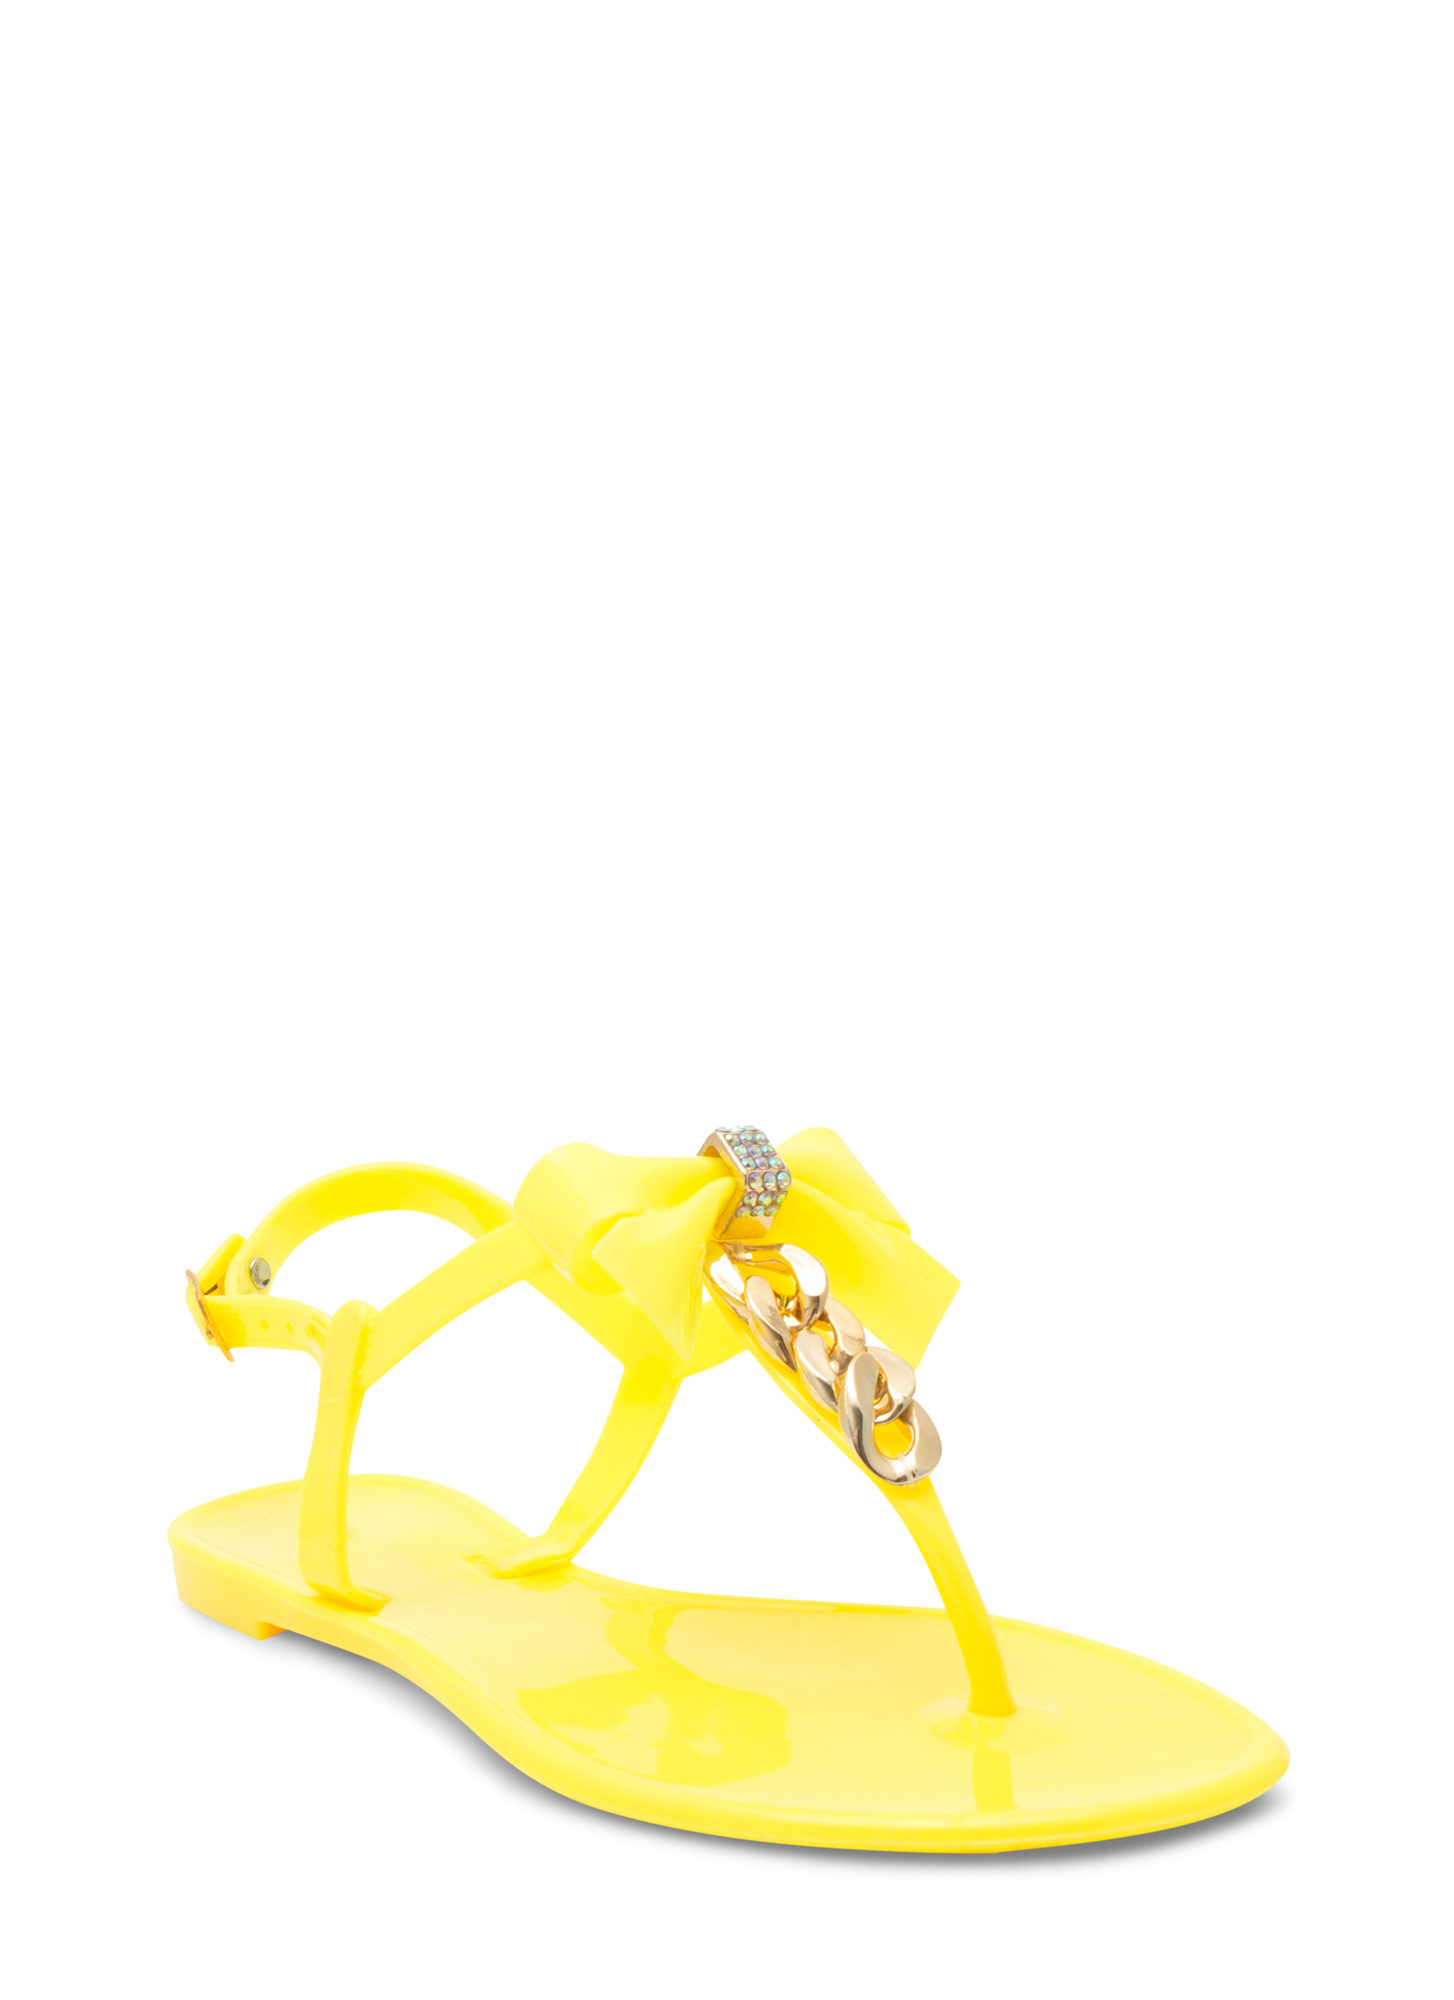 Bow 'N Chain Jelly Thong Sandals NEONYELLOW